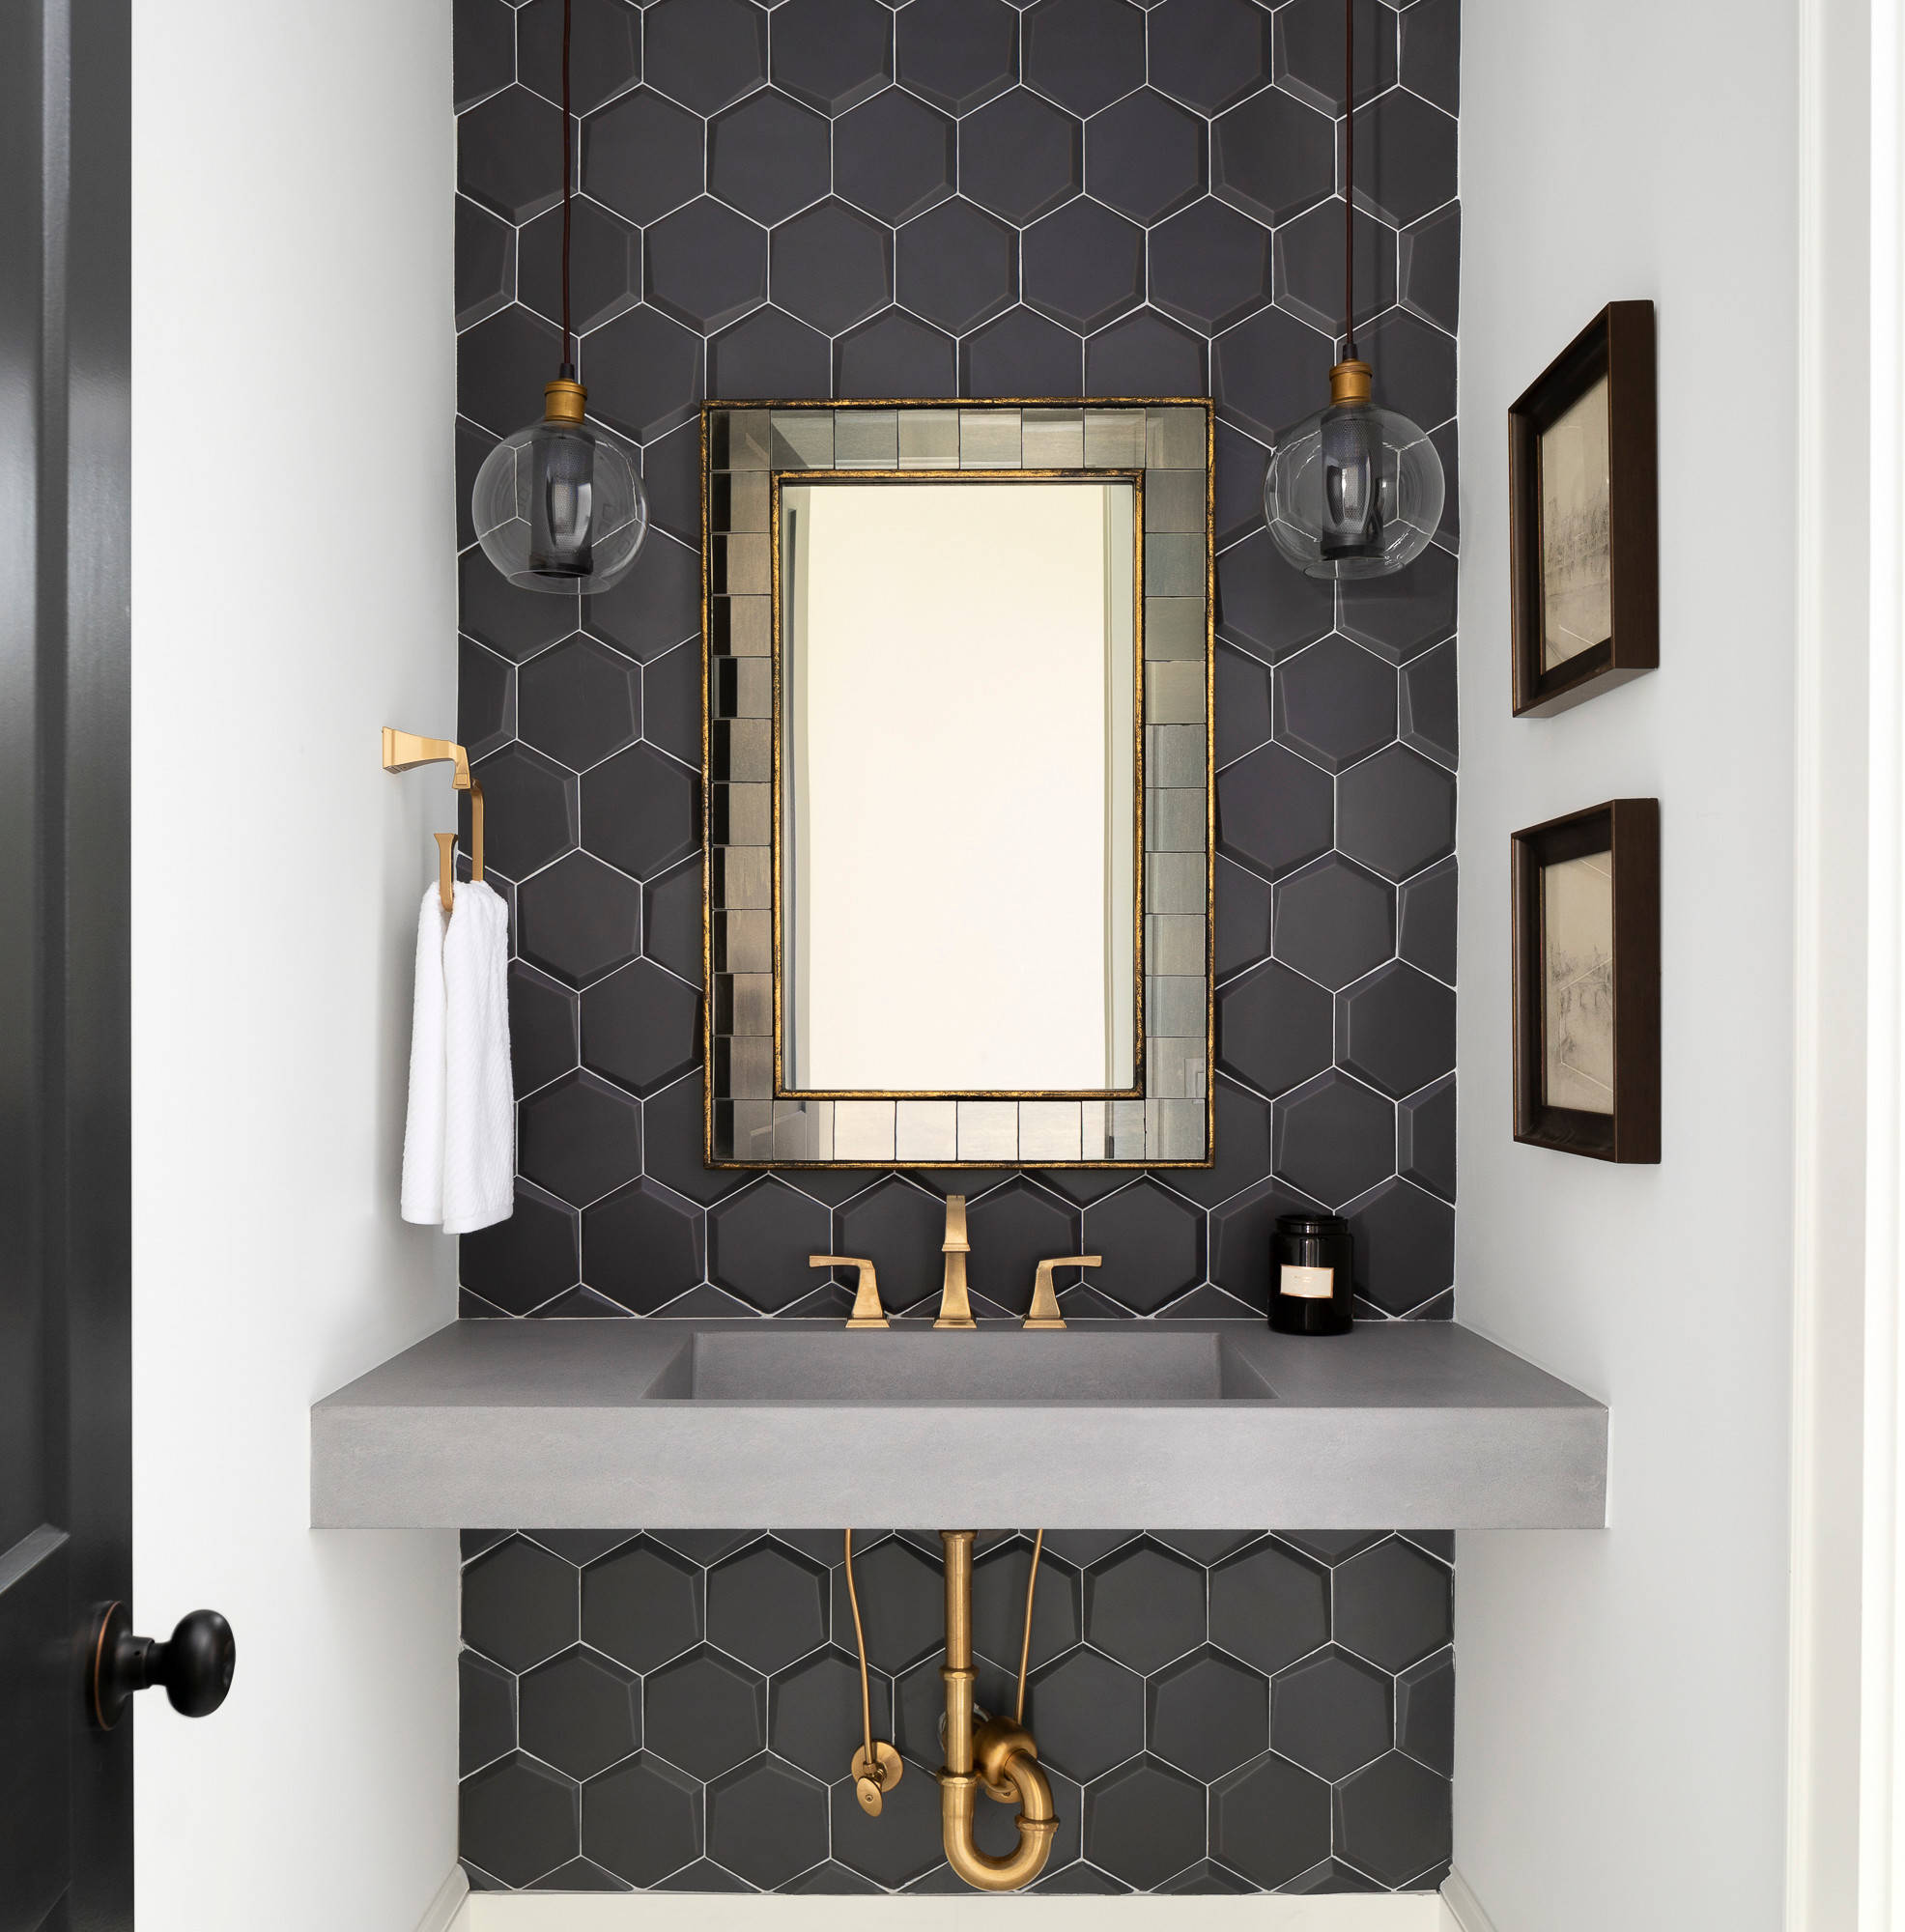 75 Beautiful Black Tile Bathroom With Concrete Countertops Pictures Ideas February 2021 Houzz